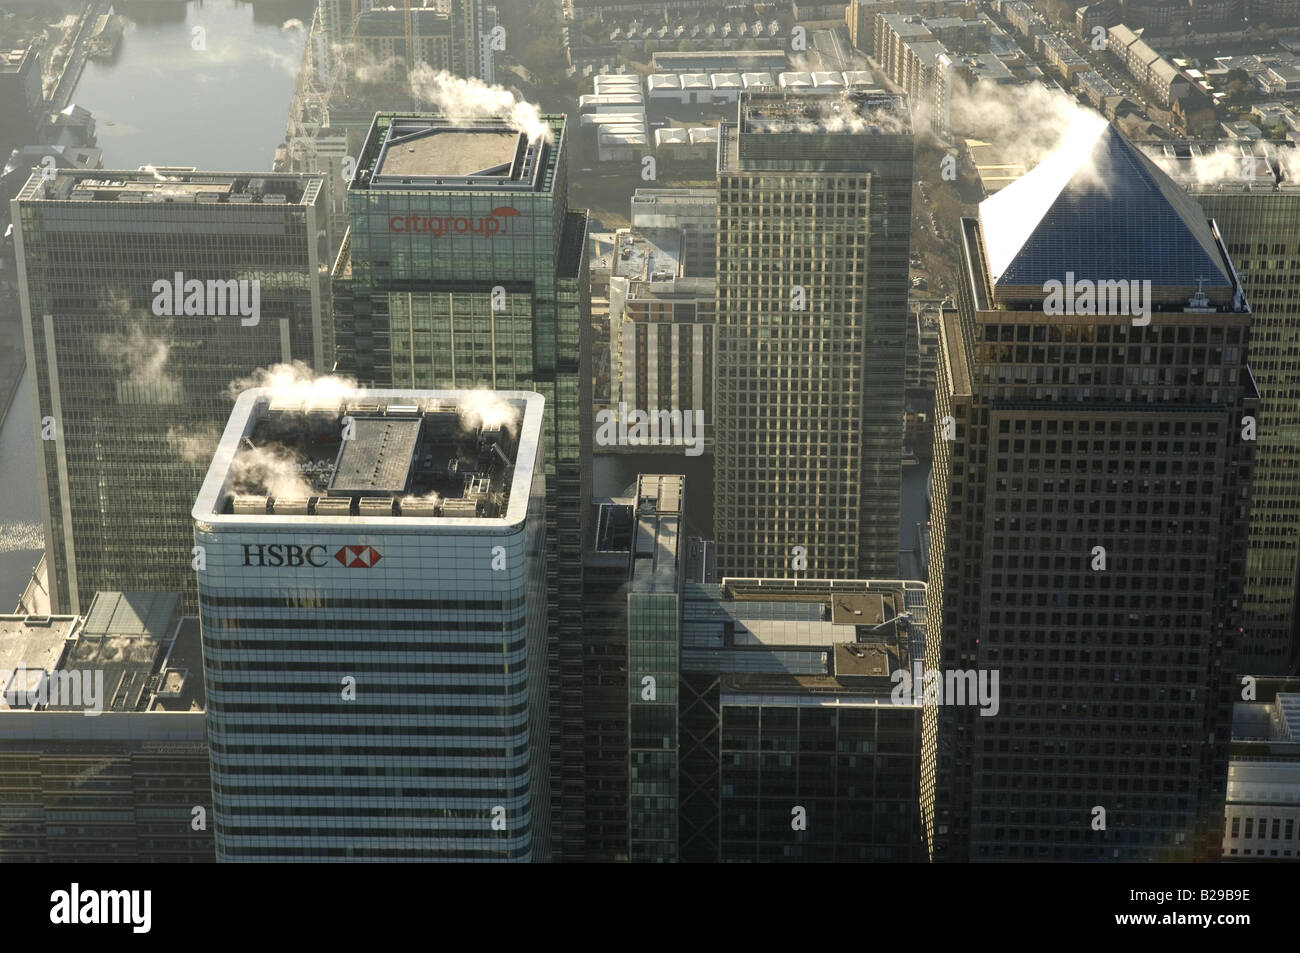 Canary Wharf Date 12 03 2008 Ref ZB648 111149 0020 COMPULSORY CREDIT World Pictures Photoshot - Stock Image